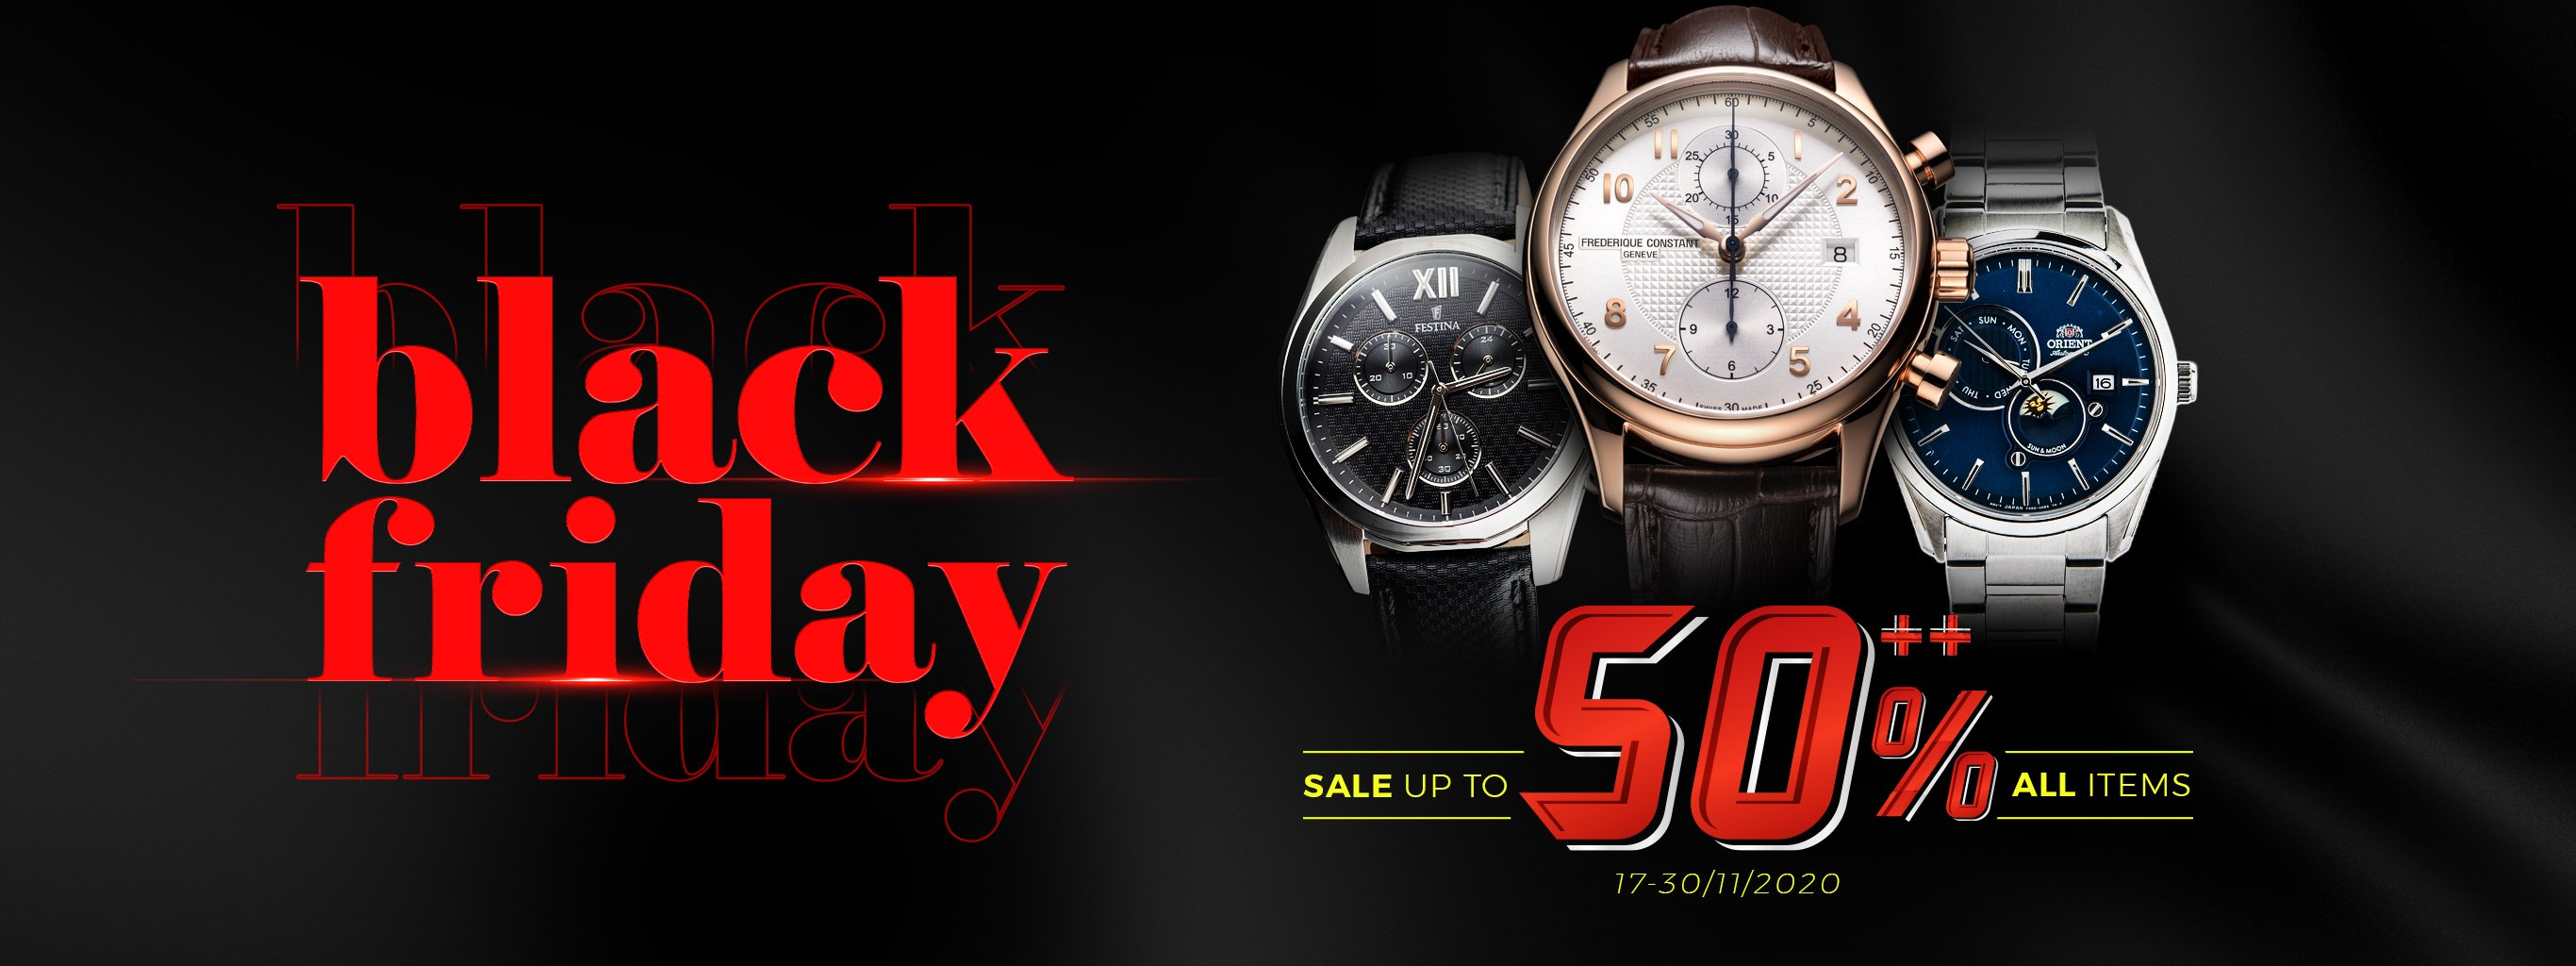 dong-ho-giam-gia-black-friday-2020-banner-donghothuysy.vn